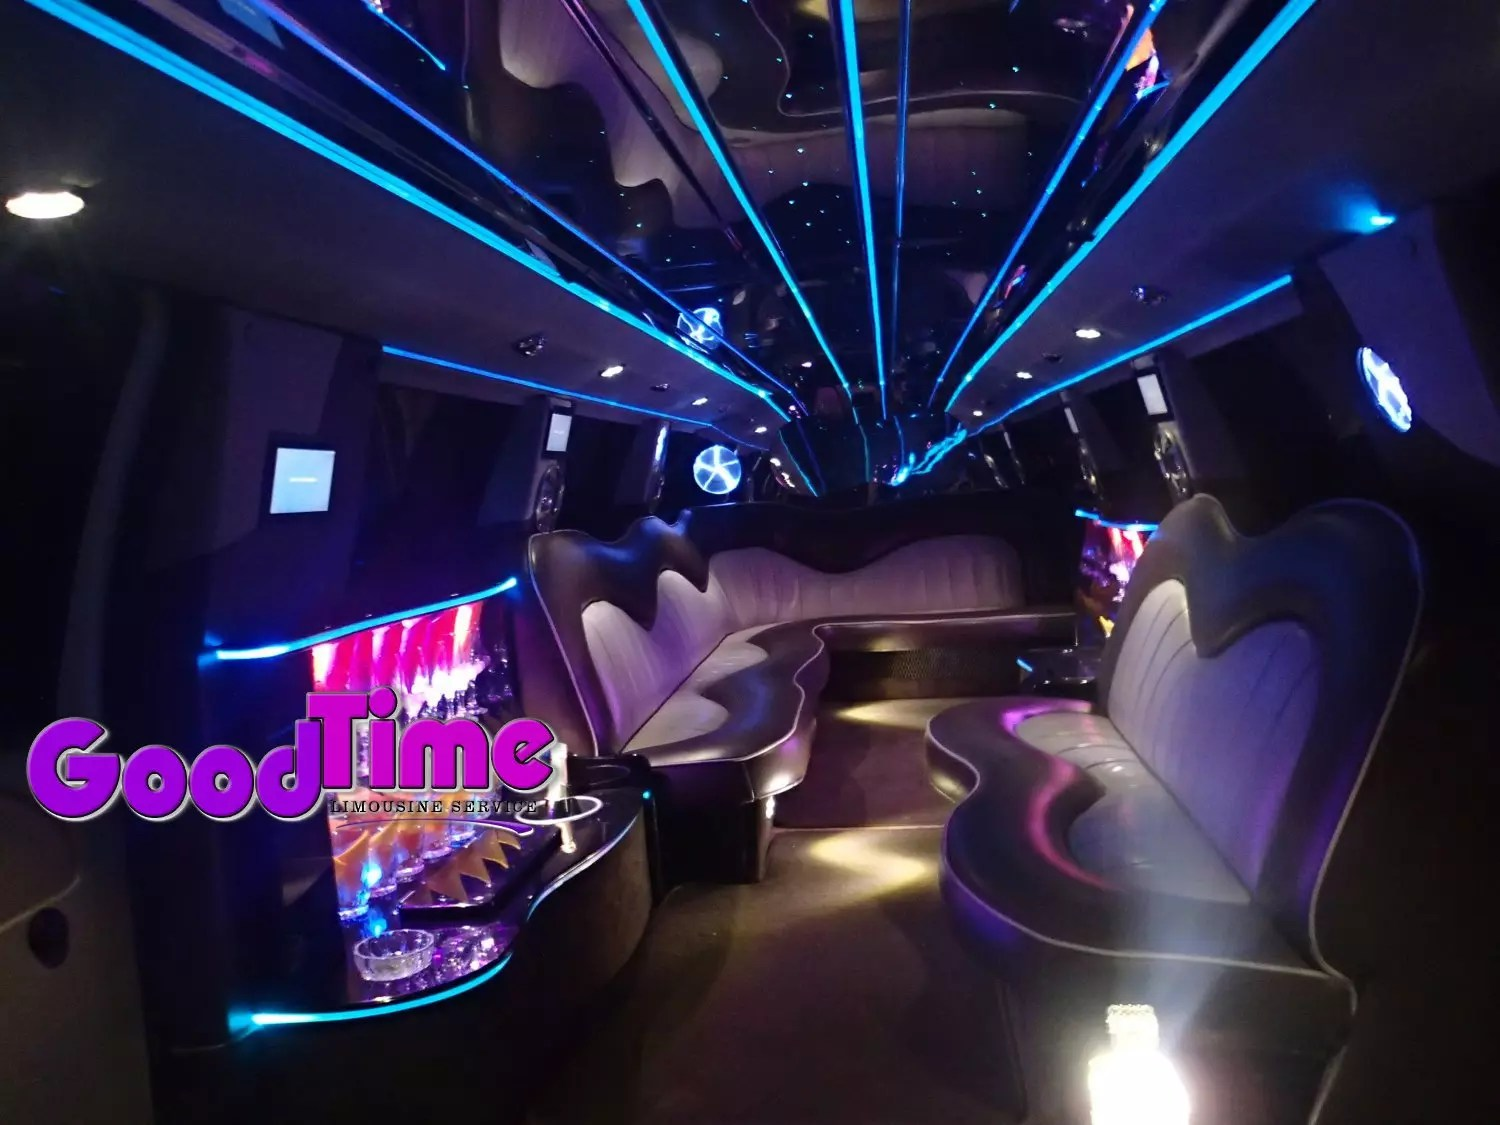 Ford F650 SUV Stretch Limo Hummer Killer 30 passengers int 3 1 LIMO RENTAL FLEET